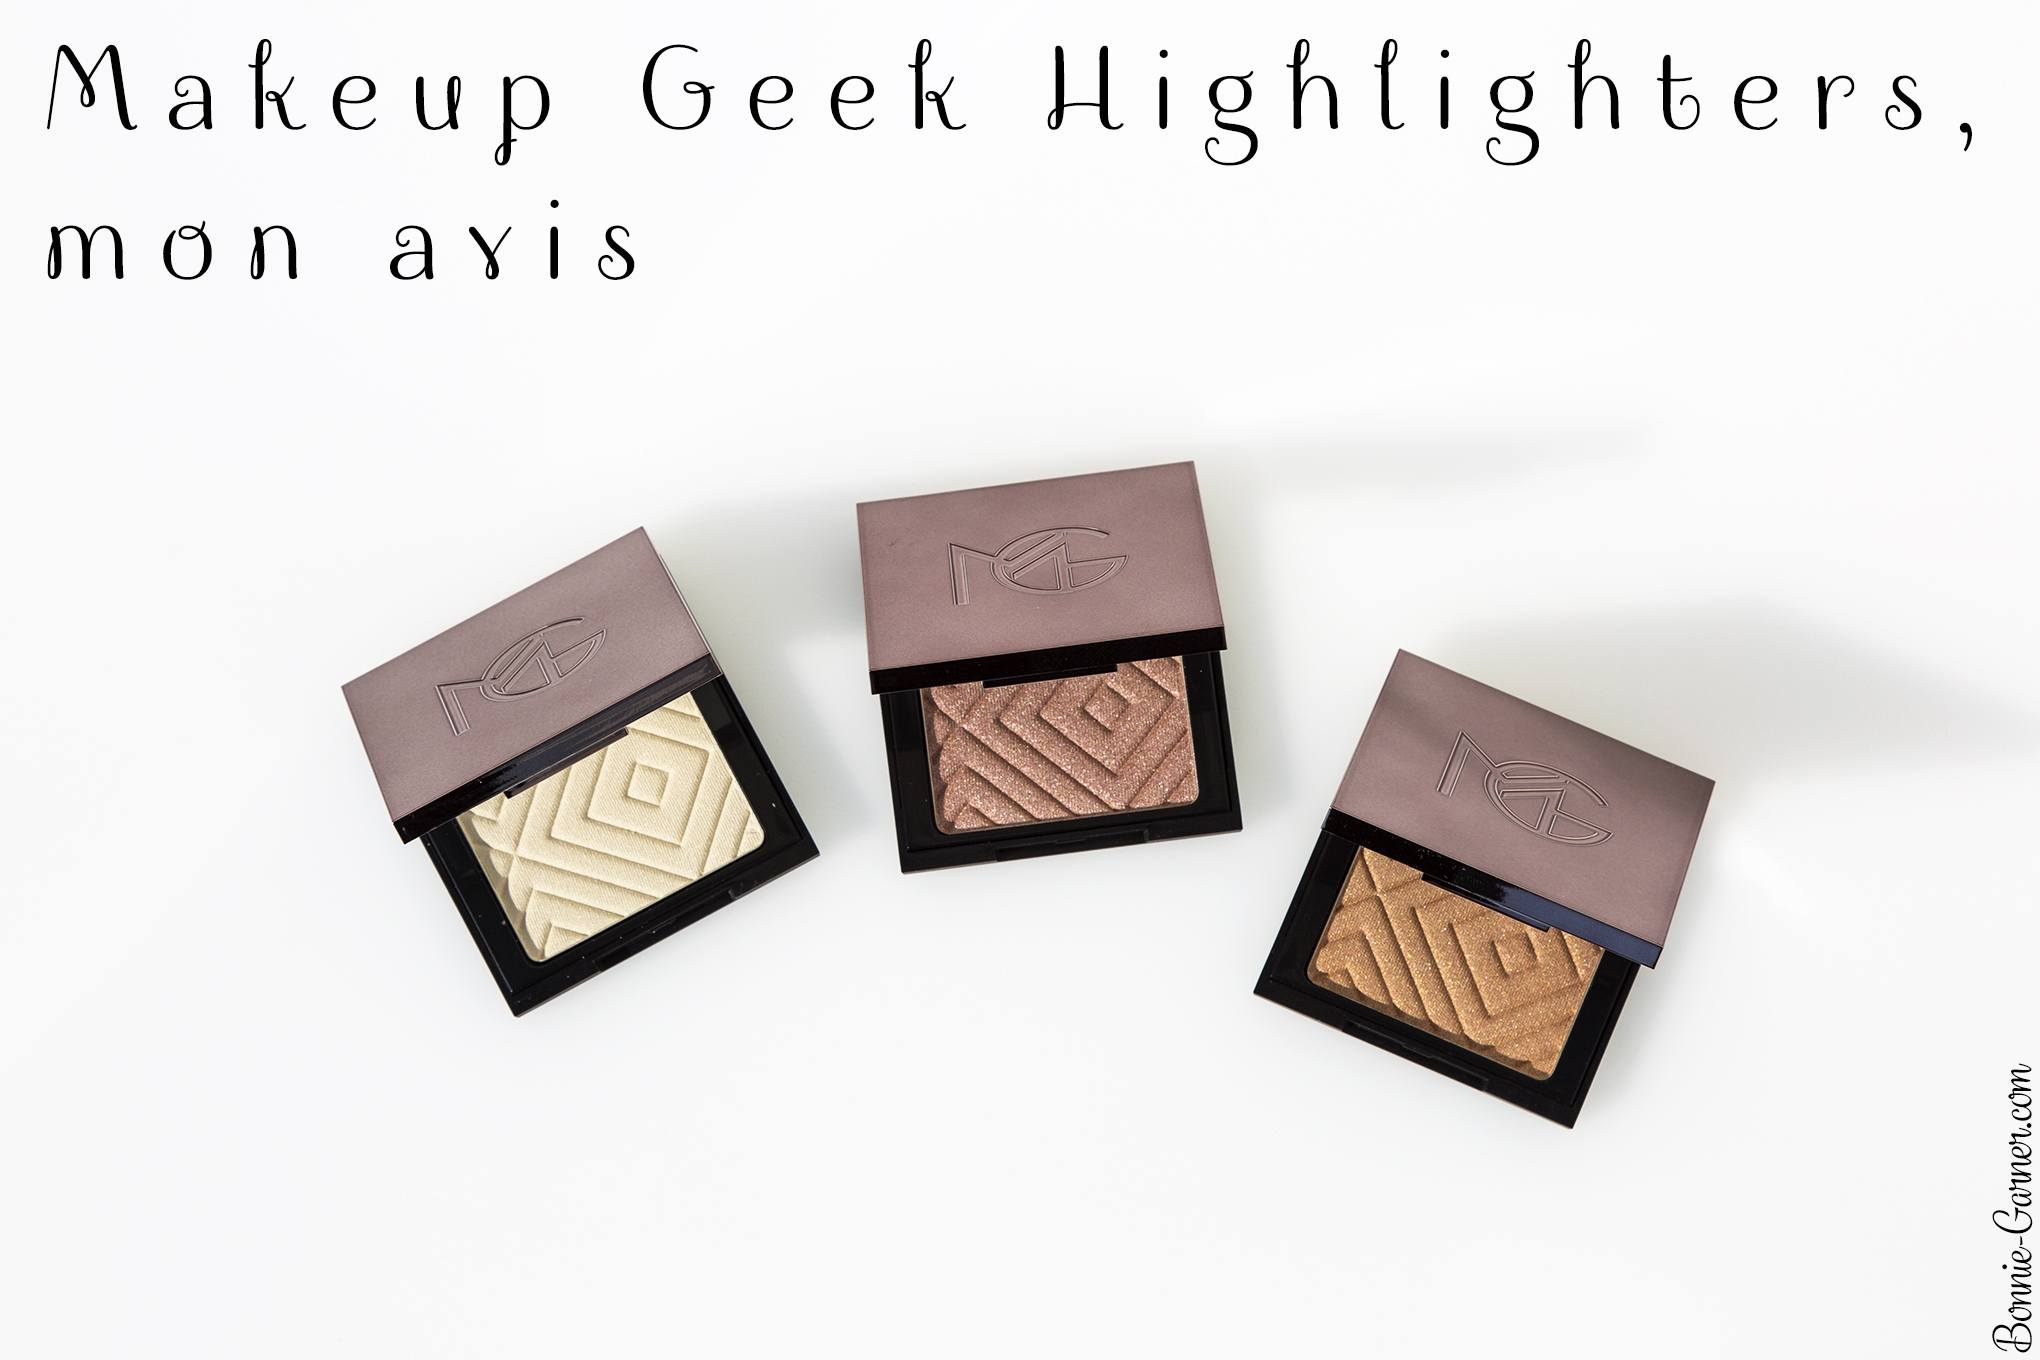 Makeup Geek Highlighters, mon avis